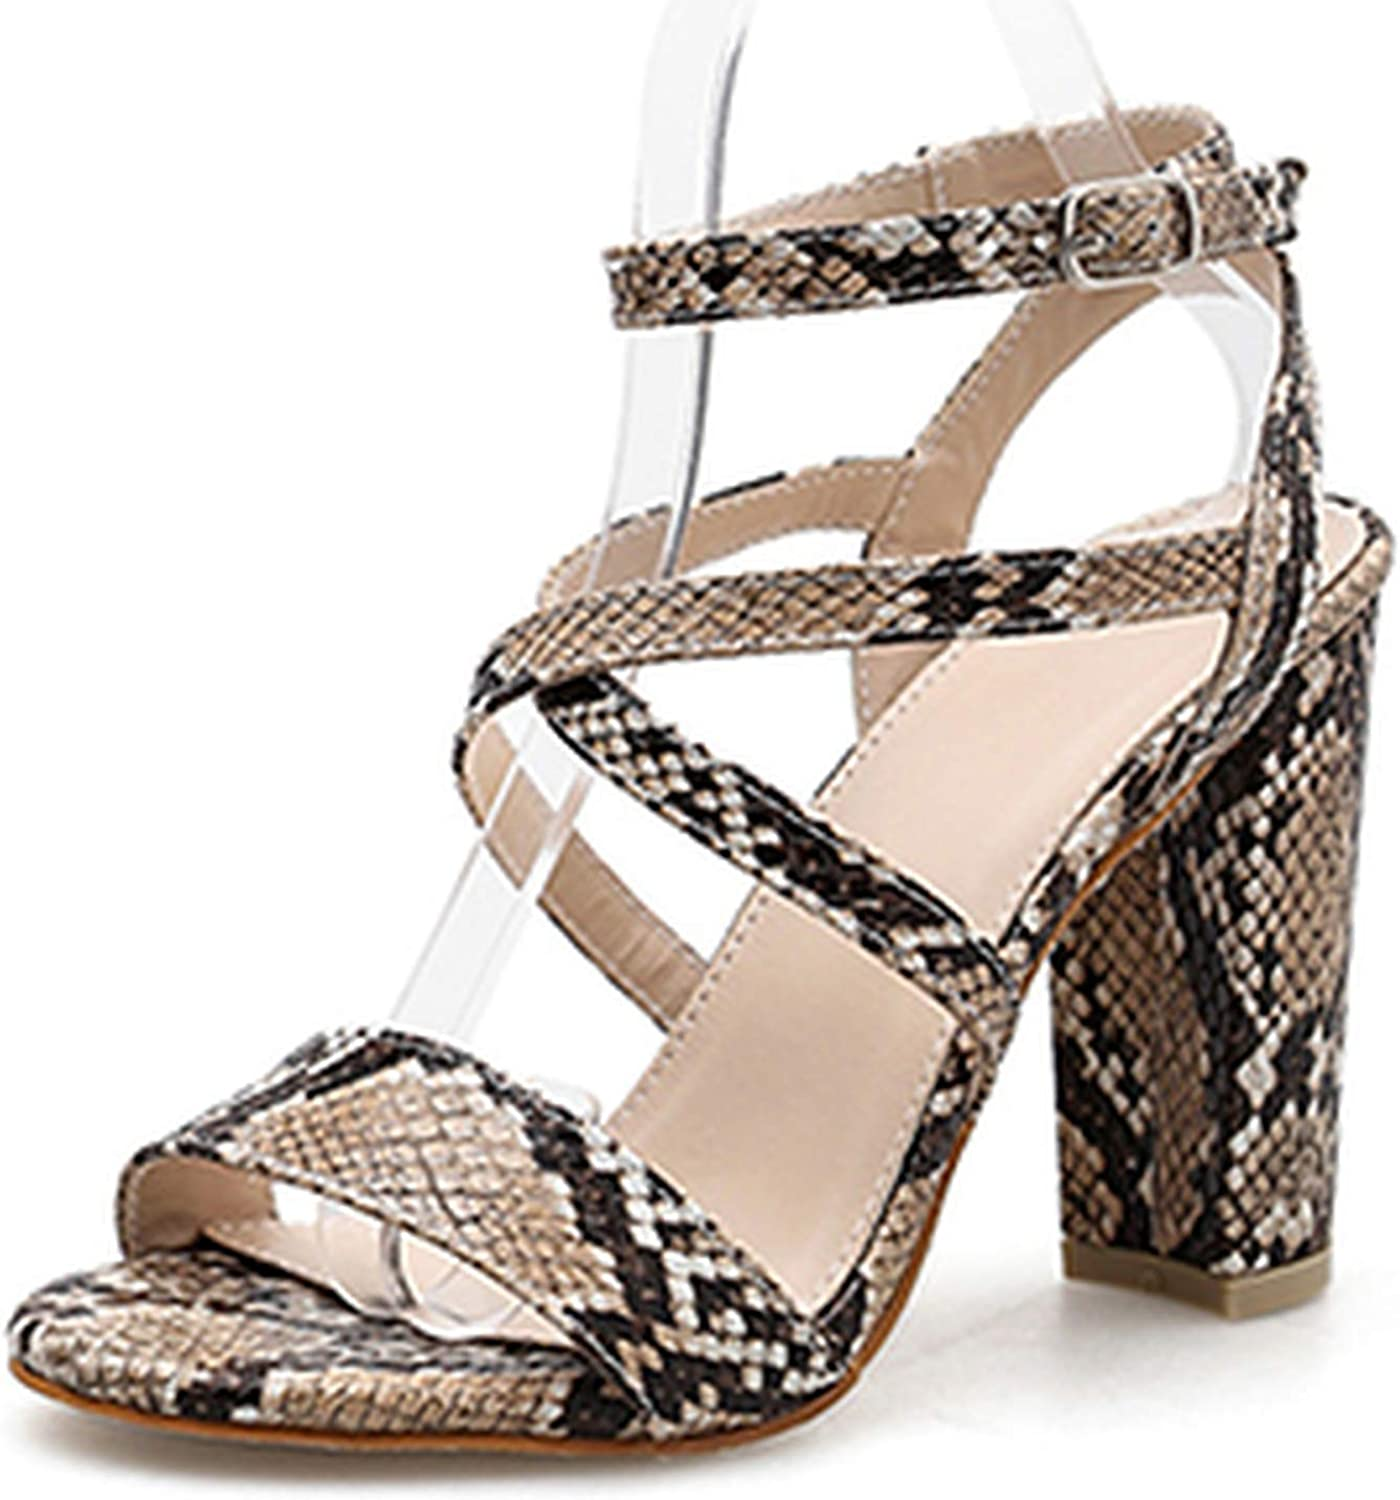 Ches Print Serpentine Gladiator Summer Sandals Buckle Strap Rome Square High Heel 11CM Fashion Ladies Sandals shoes